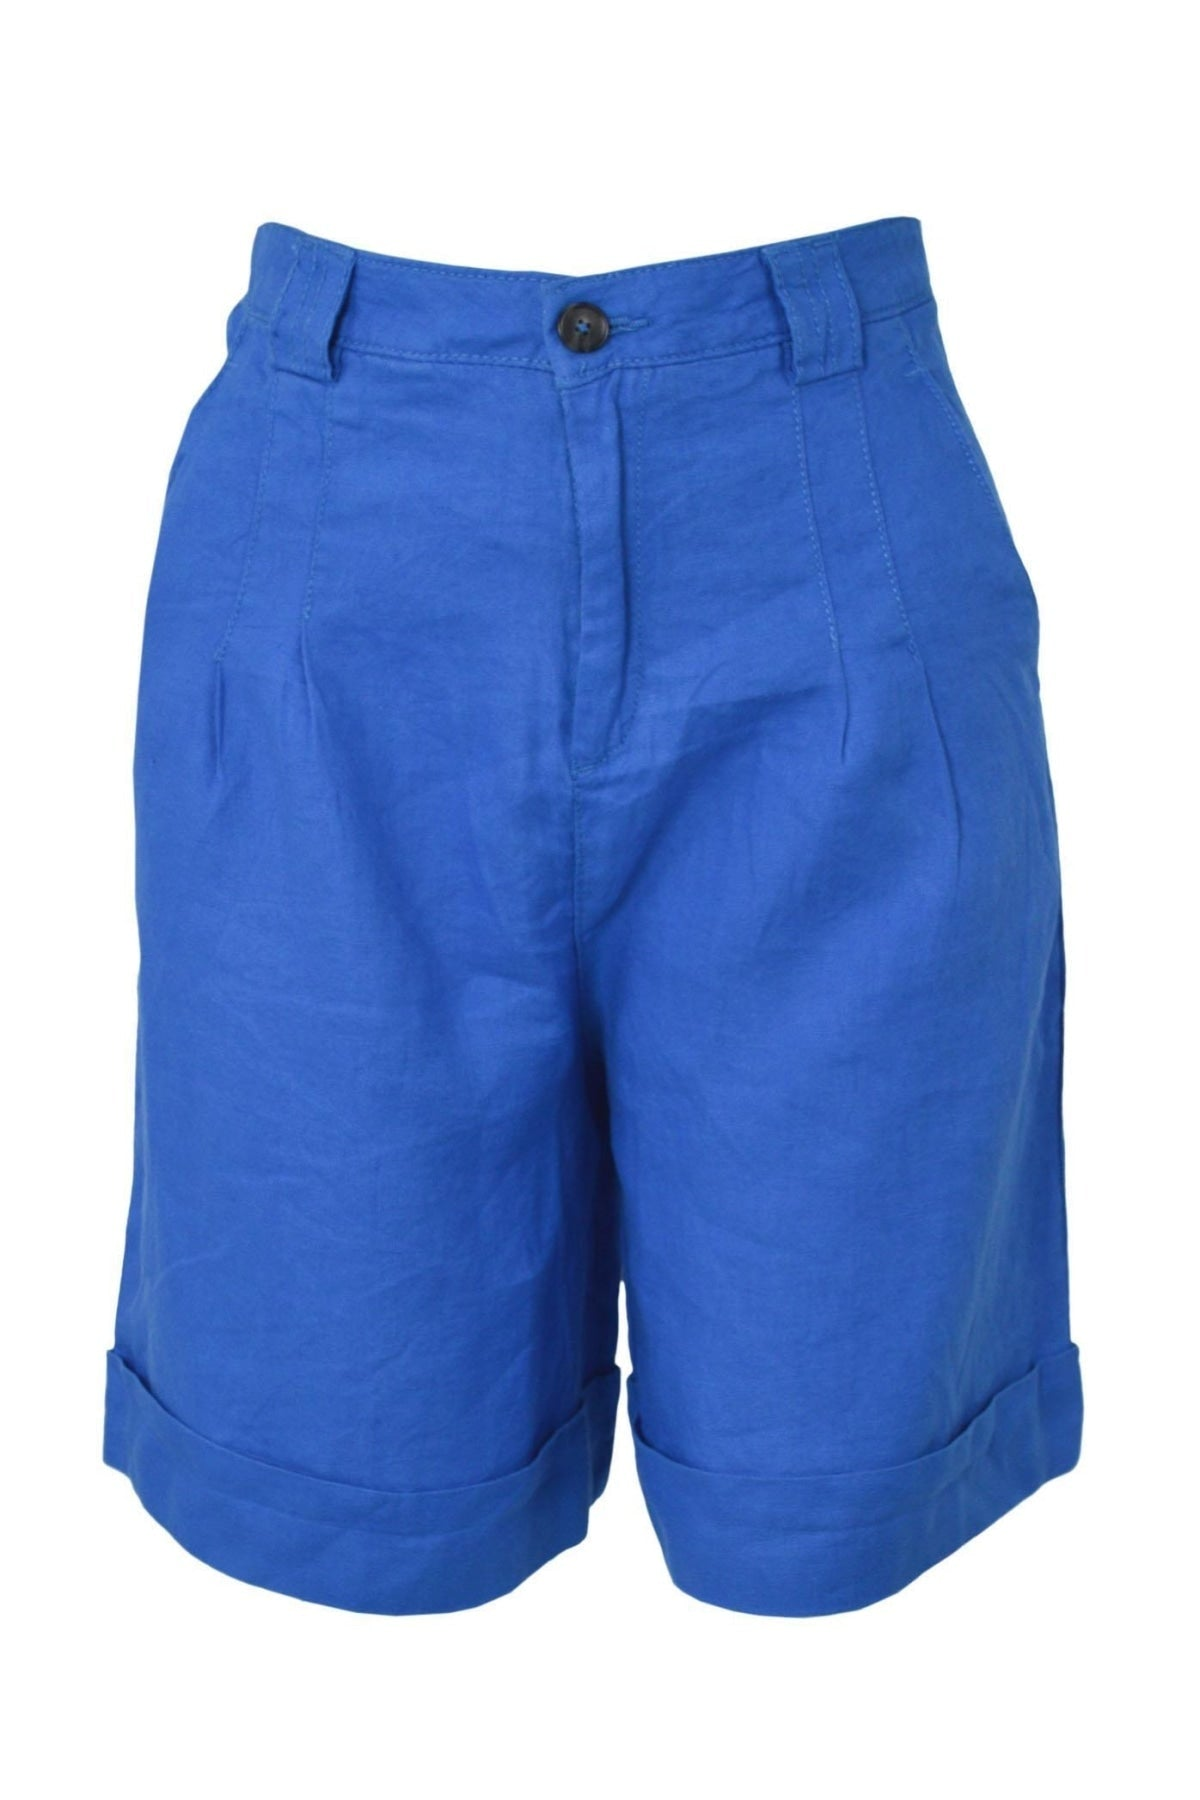 United Colors Of Benetton Cotton Bermuda Shorts | 12 / Royal Blue Secret Label